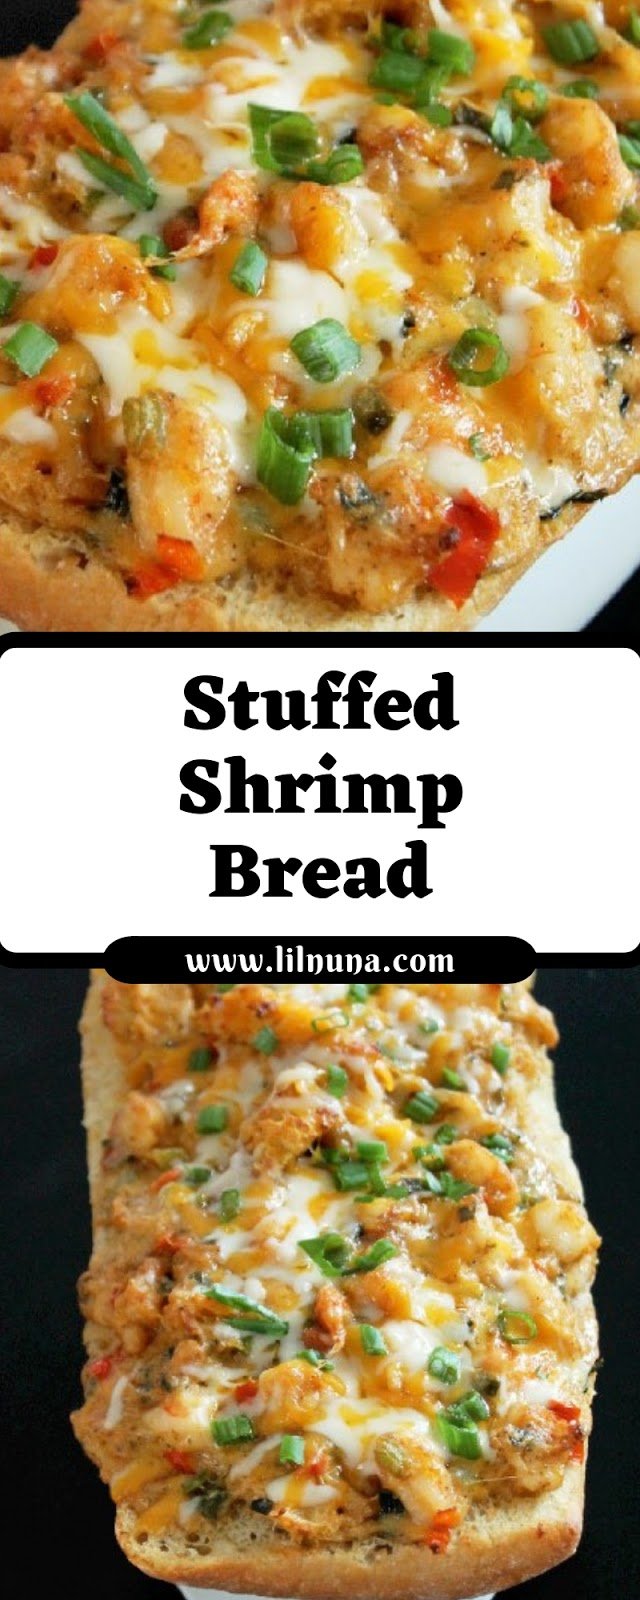 Stuffed Shrimp Bread